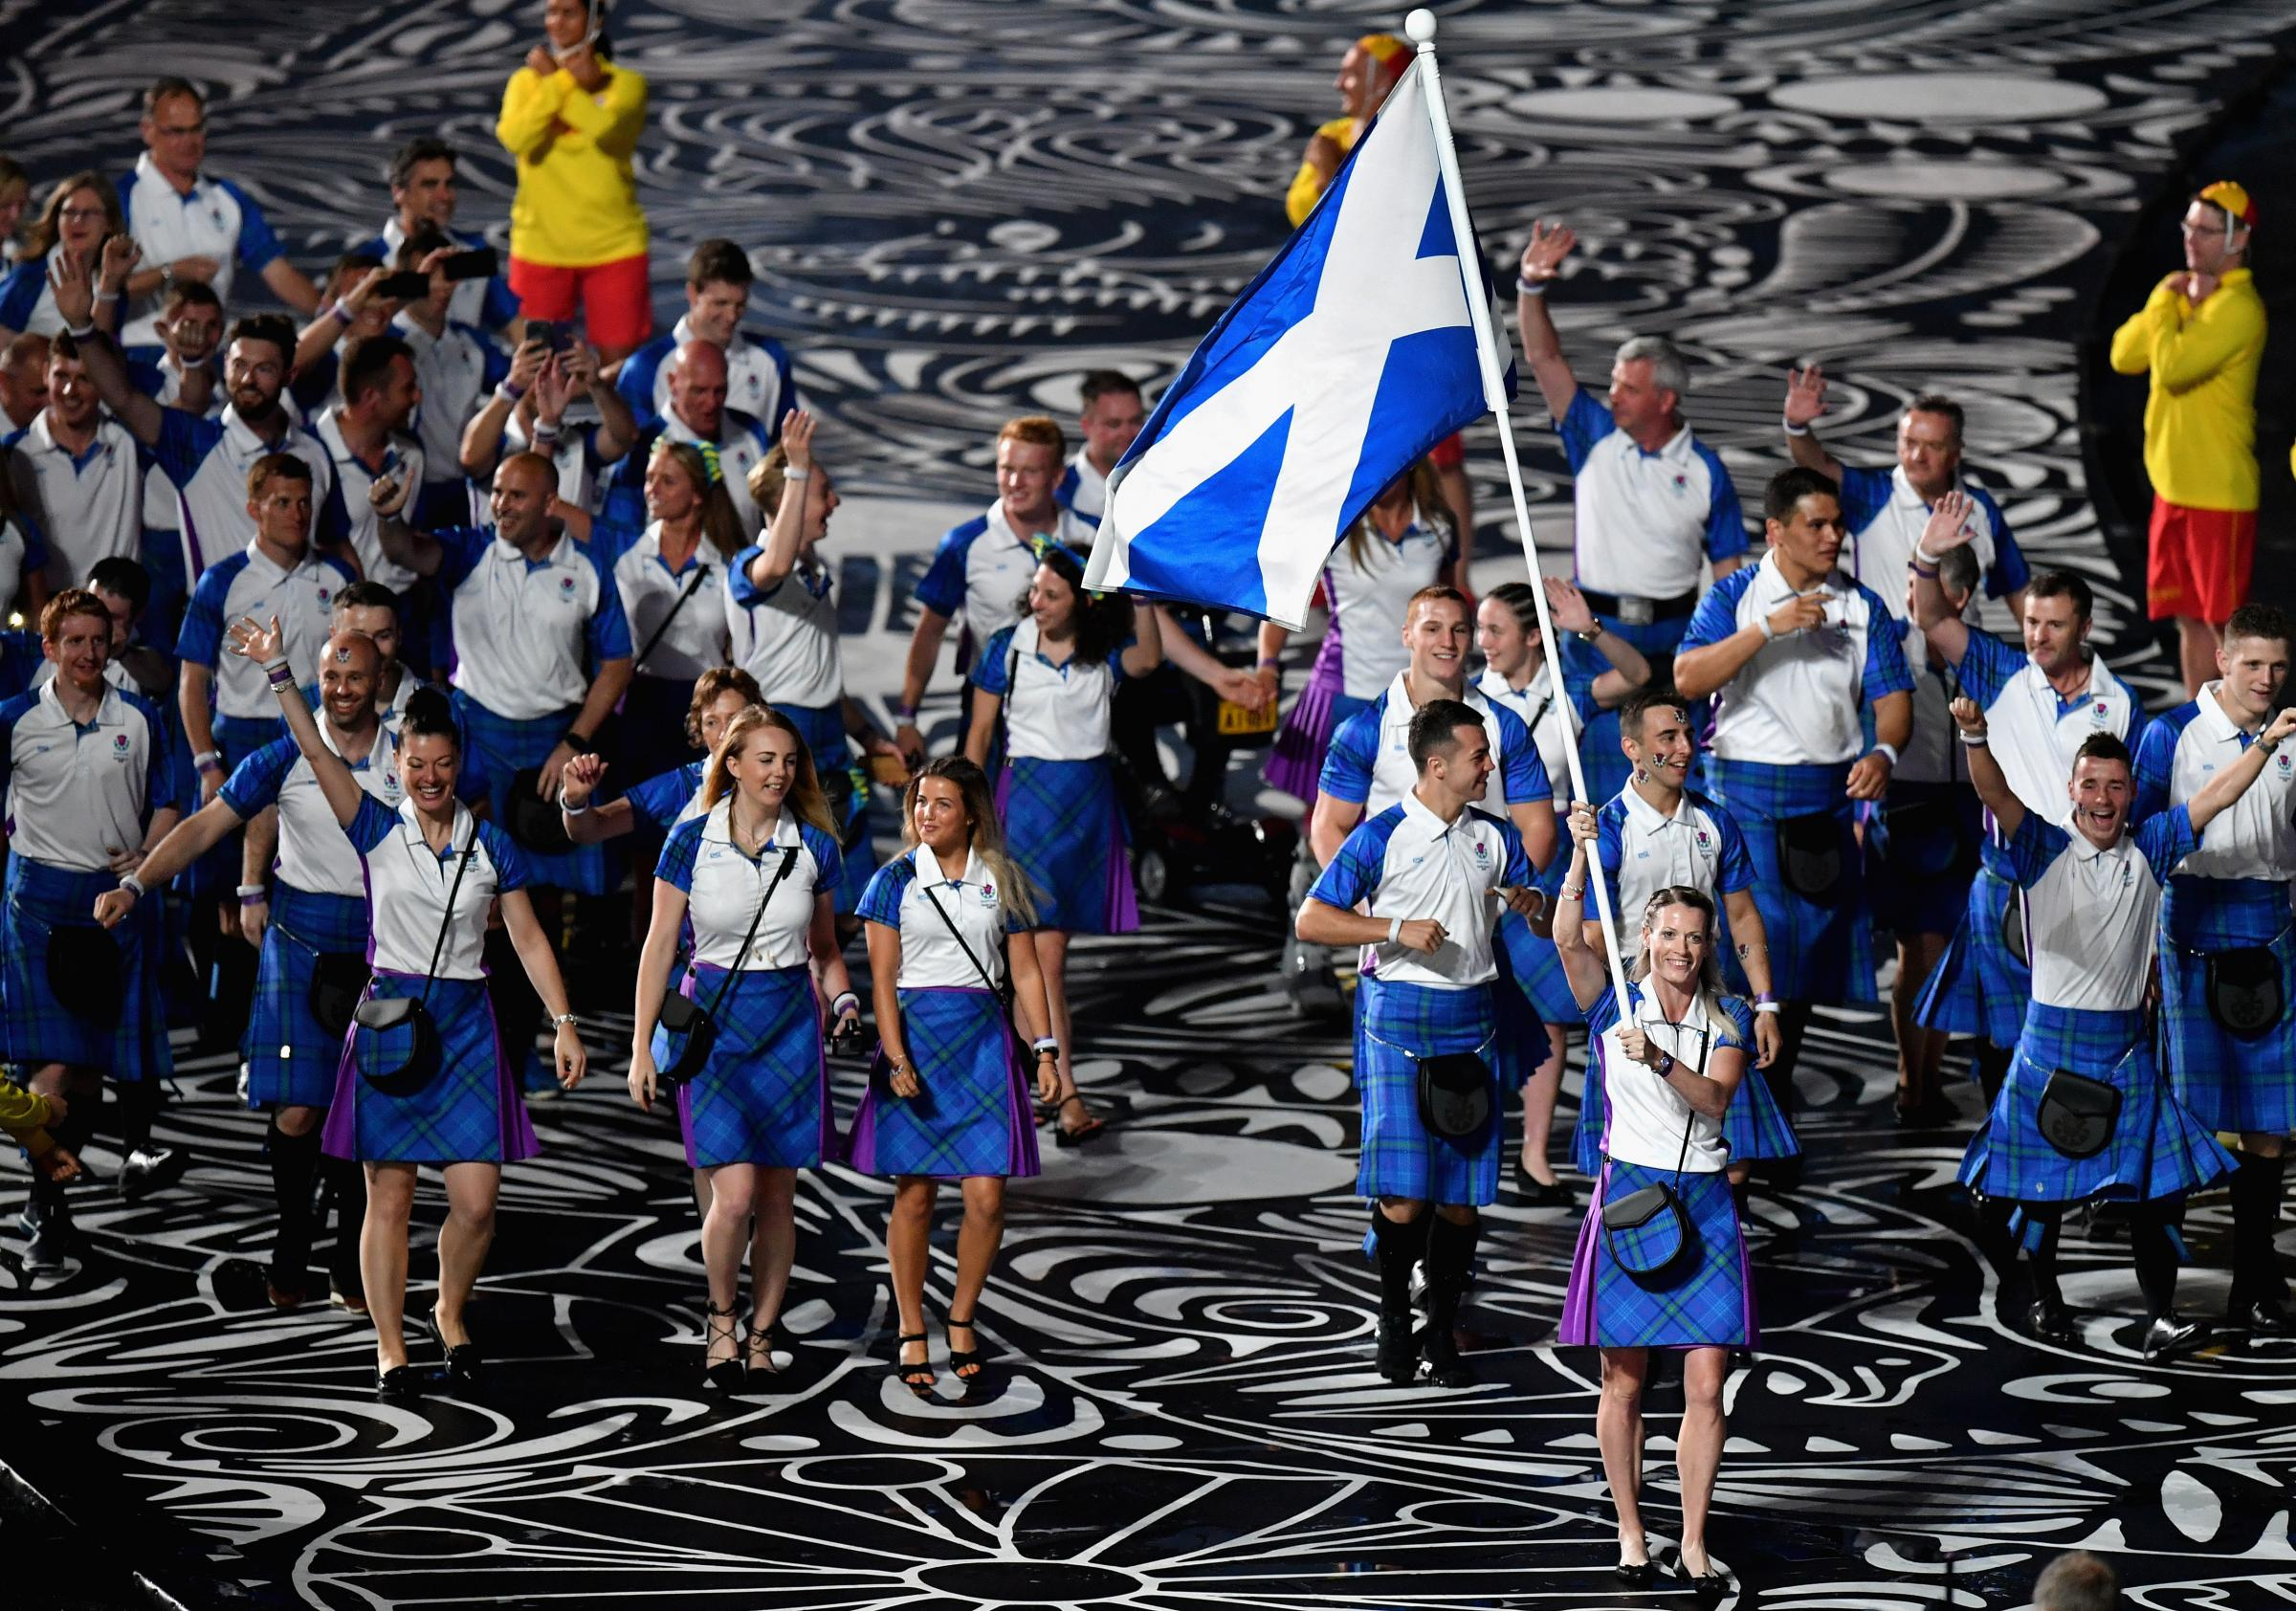 Scotland's athletes performed admirably at the Games